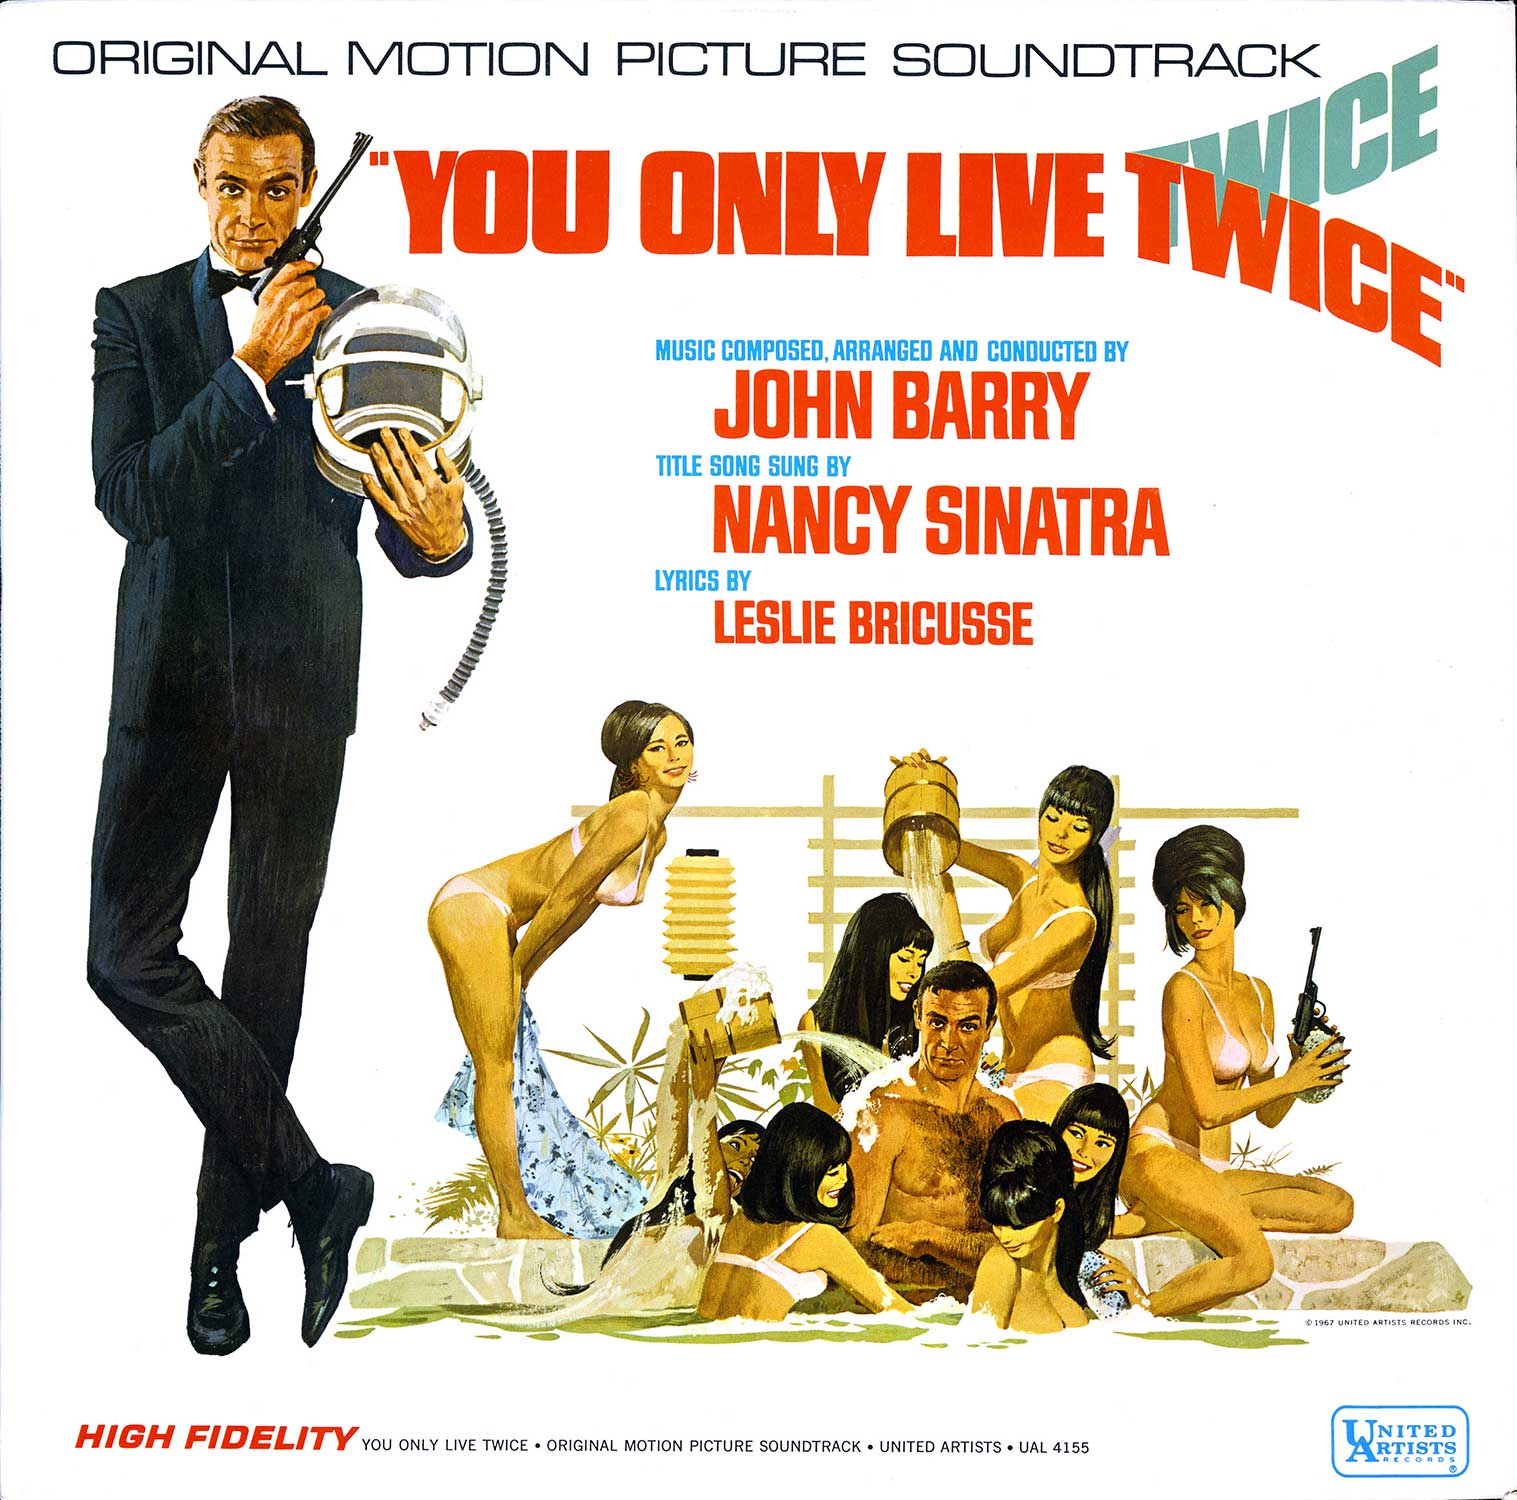 Record album cover, YOU ONLY LIVE TWICE, 1967.